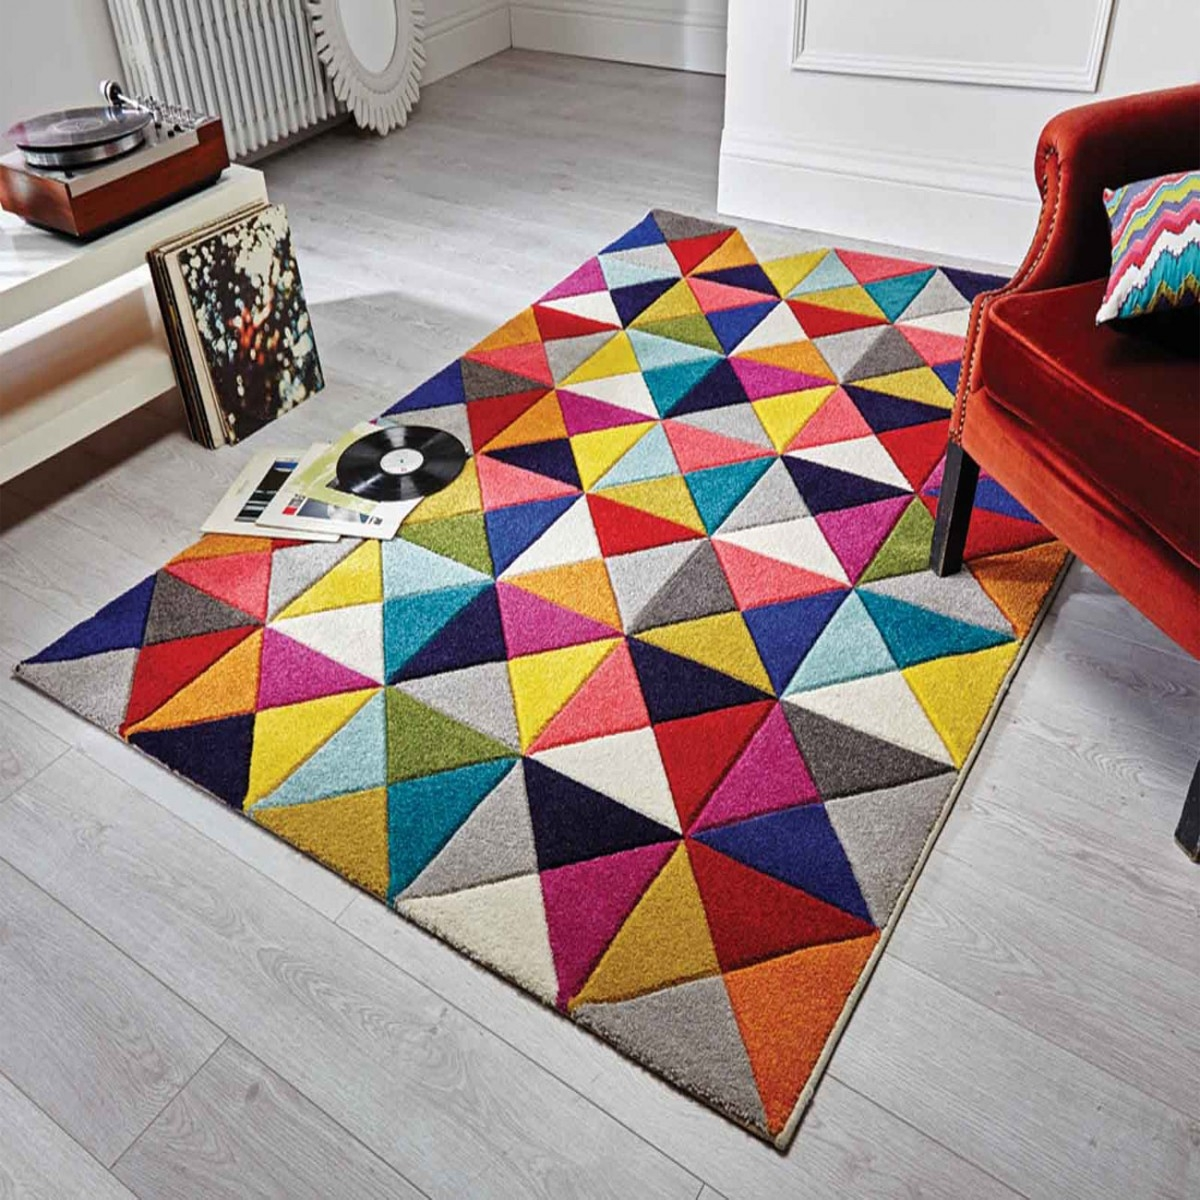 Spectrum Samba Multicoloured Rug Flair Rugs Therugshopuk Pertaining To Flair Rugs (Image 15 of 15)